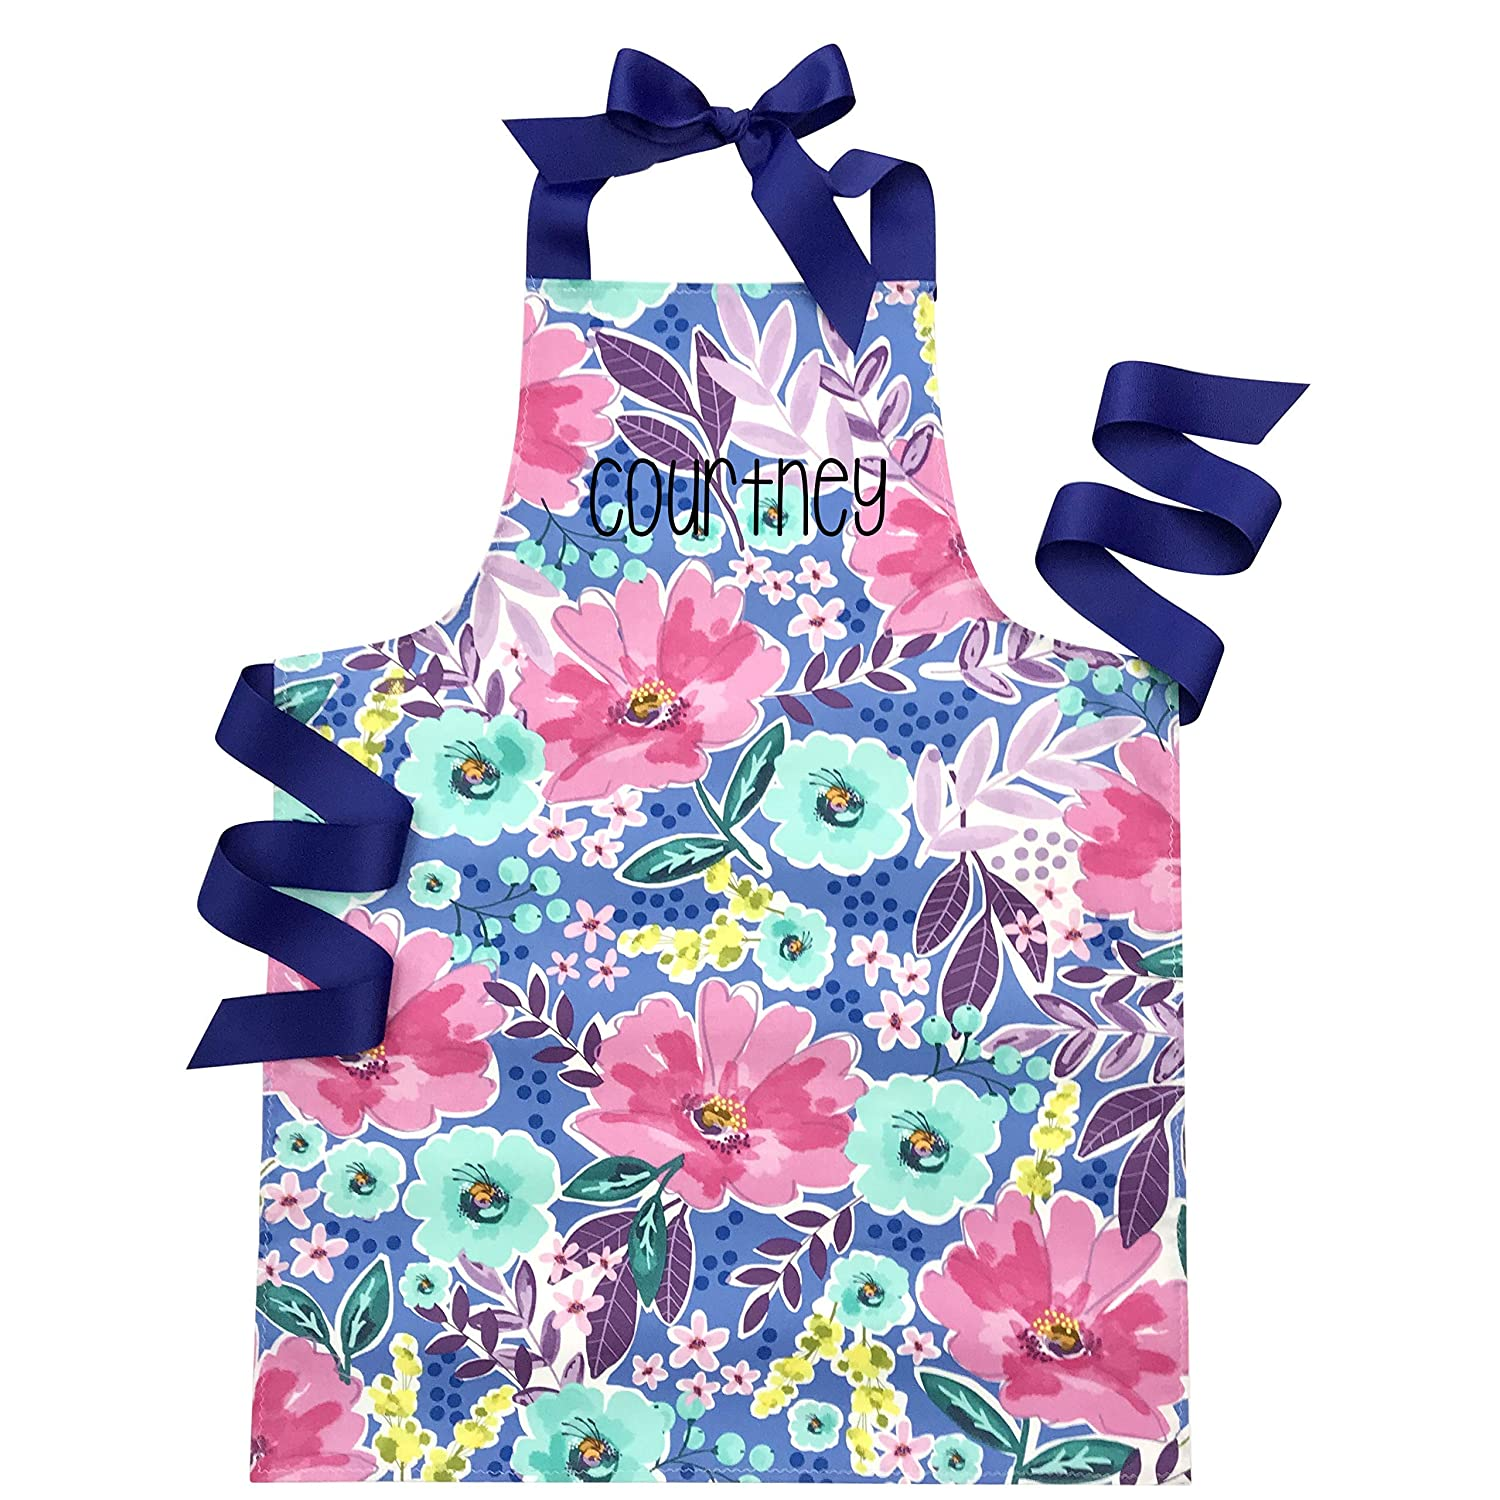 Personalized High quality new Watercolor Floral Handmade Daily bargain sale Baking Apron Gift or Art